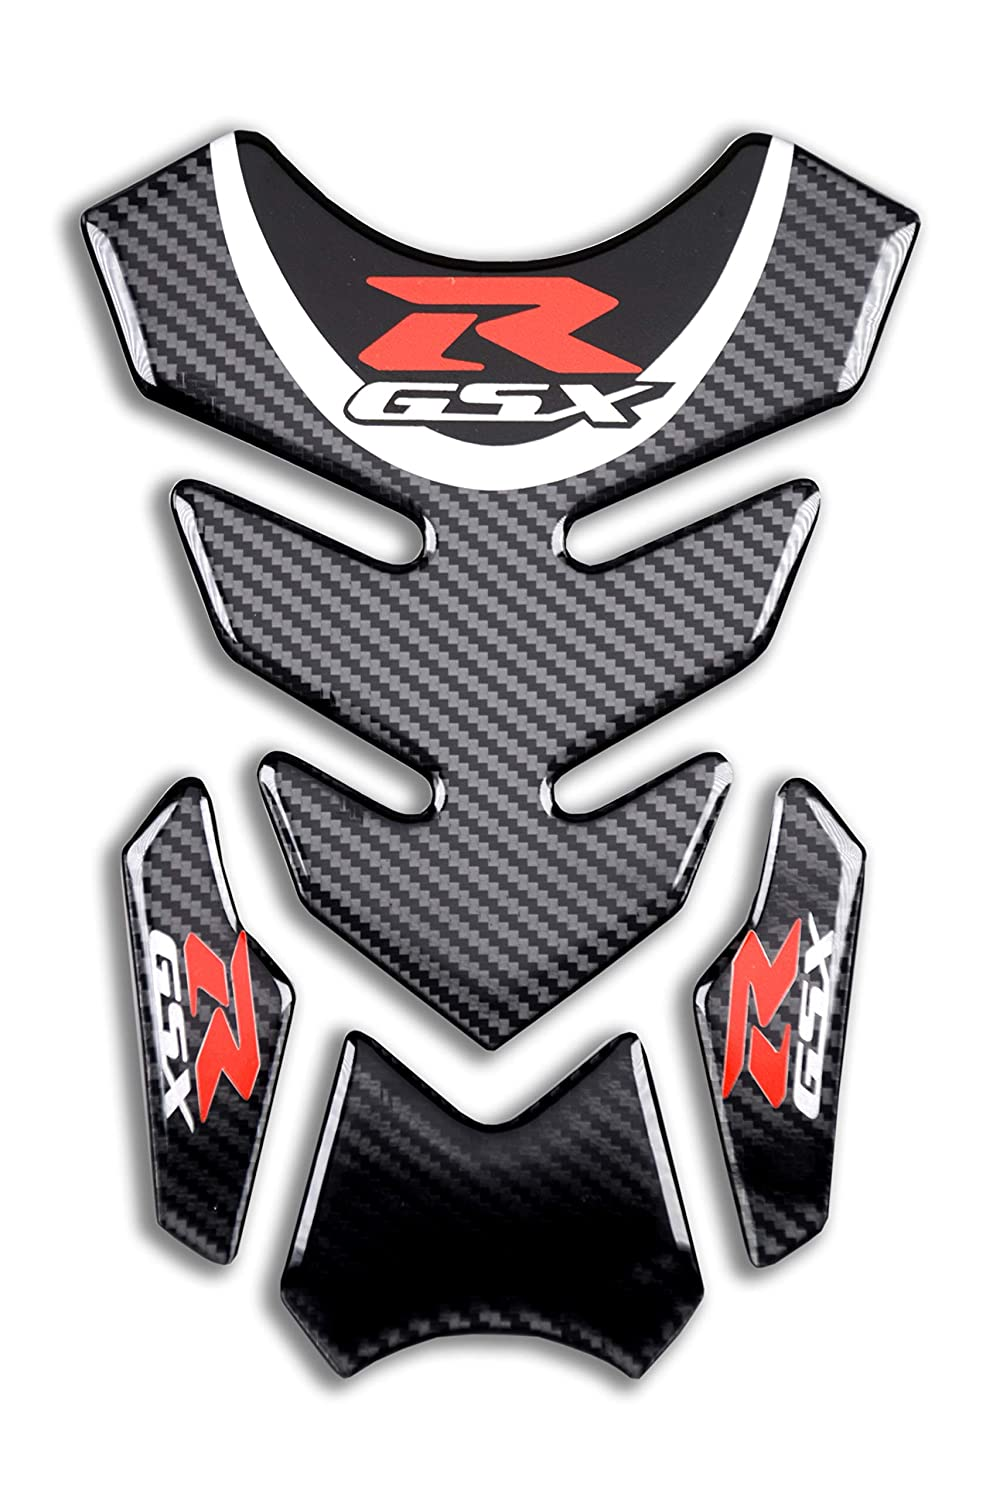 2011-2015 Clear Anti Slip sticker,Gas Tank Pad REVSOSTAR Motorcycle Tank Side Traction Pad Traction Side Fuel Knee Grip Decal for GSXR 600 750